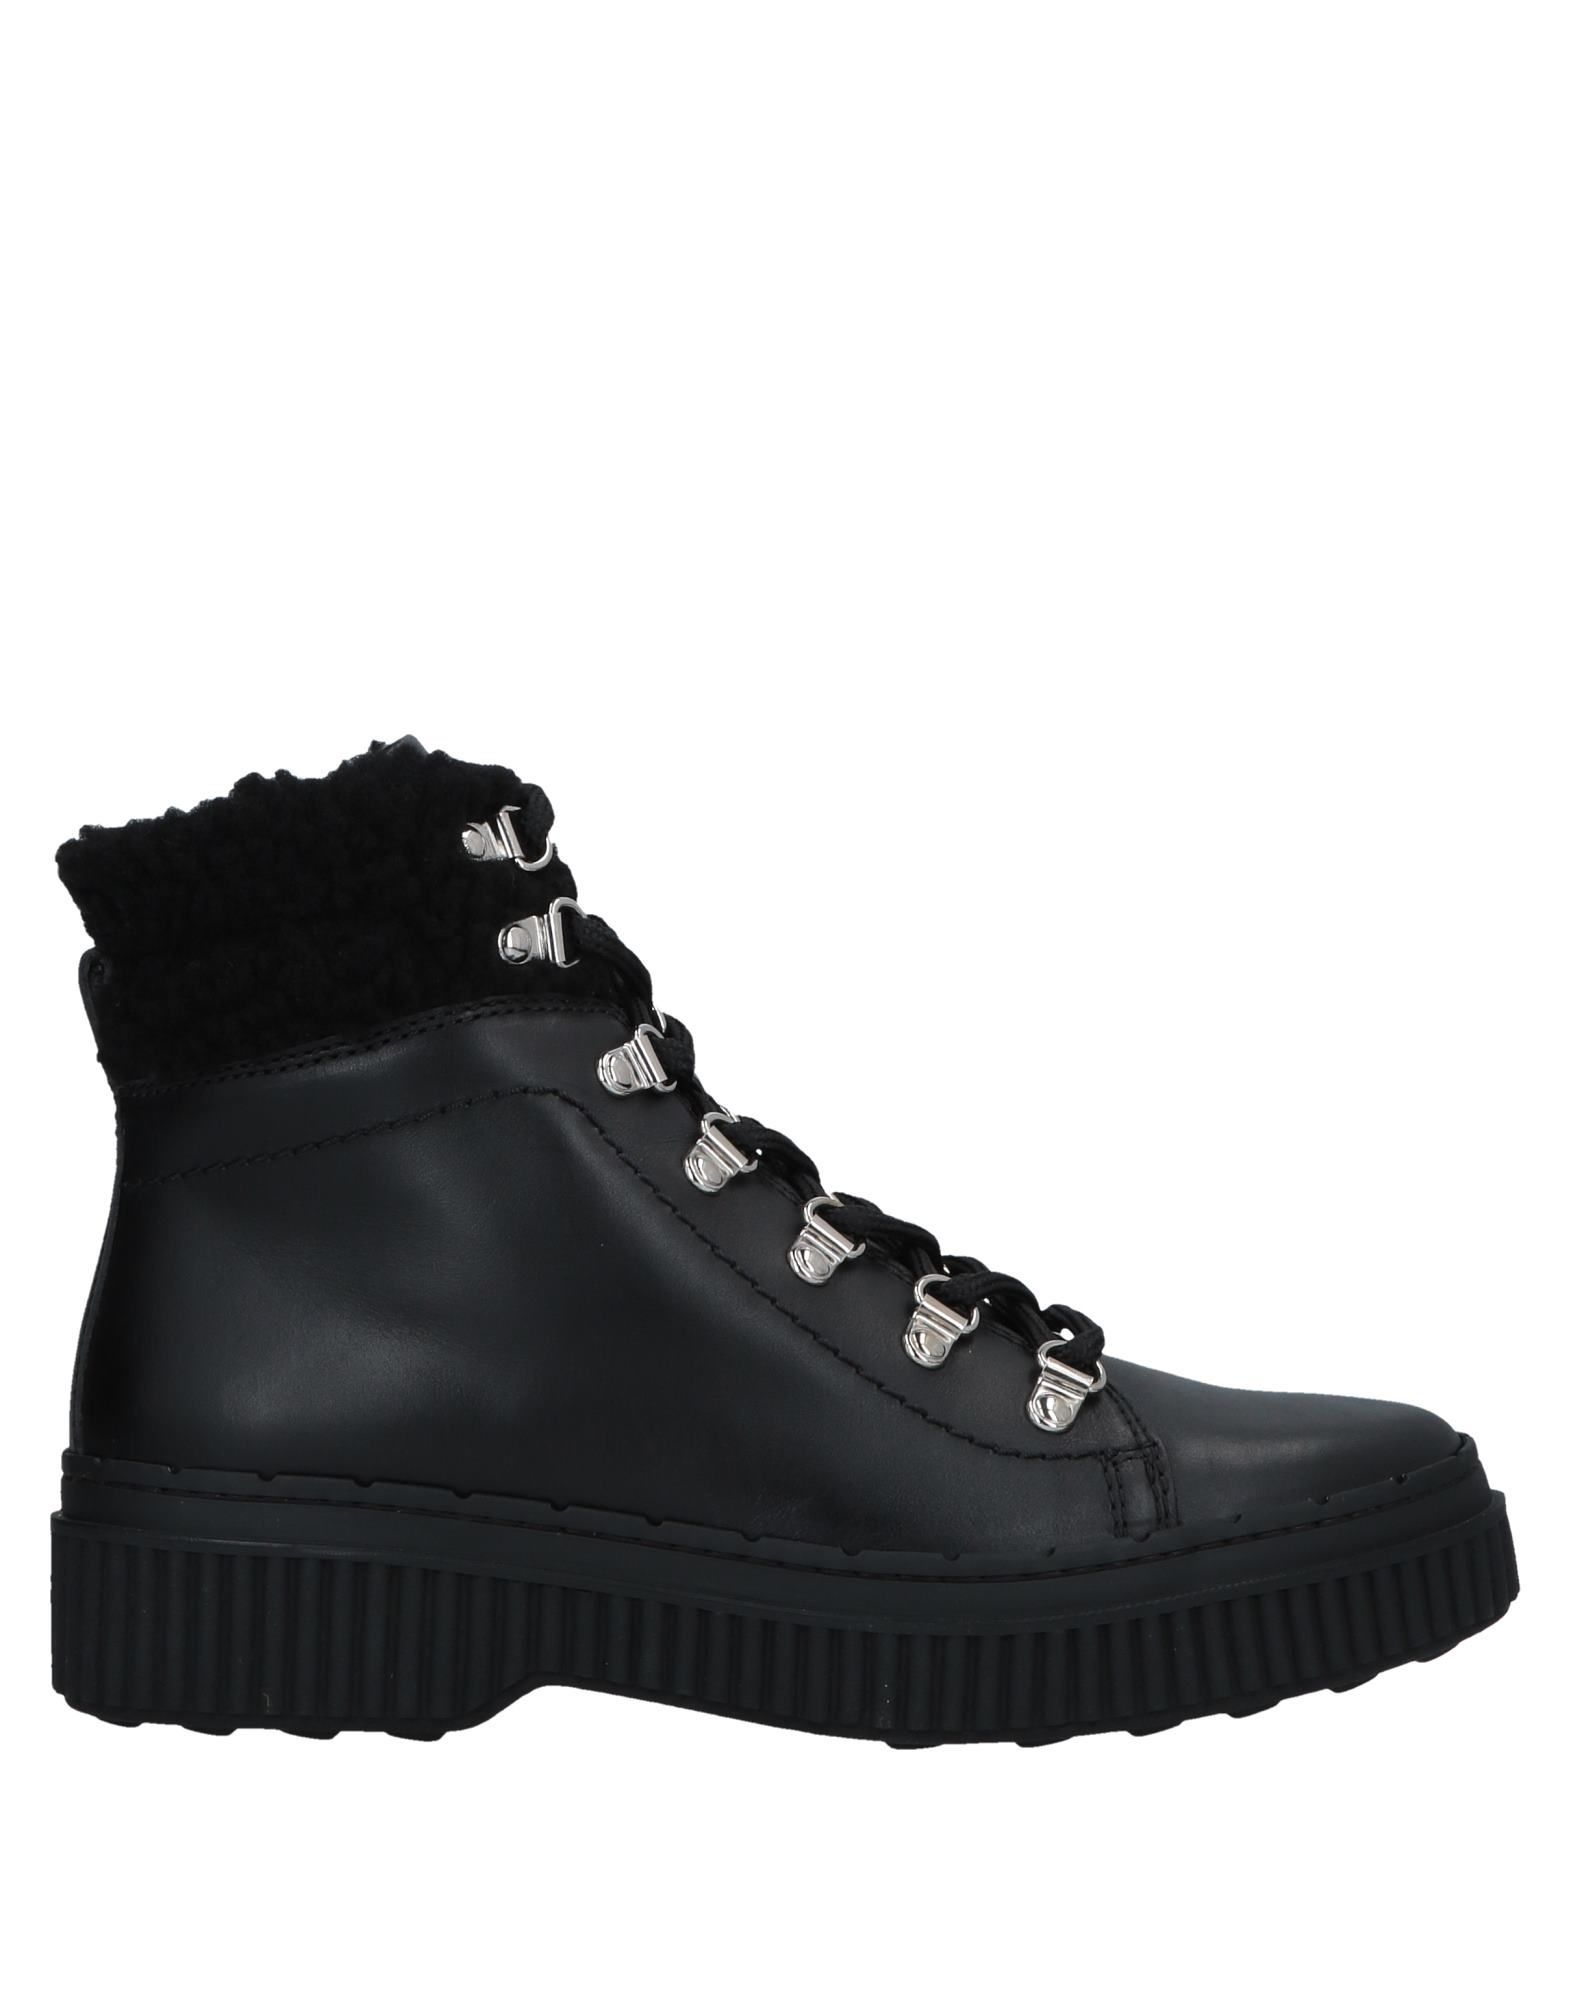 Tod's Black Calf Leather Lace Up Boots